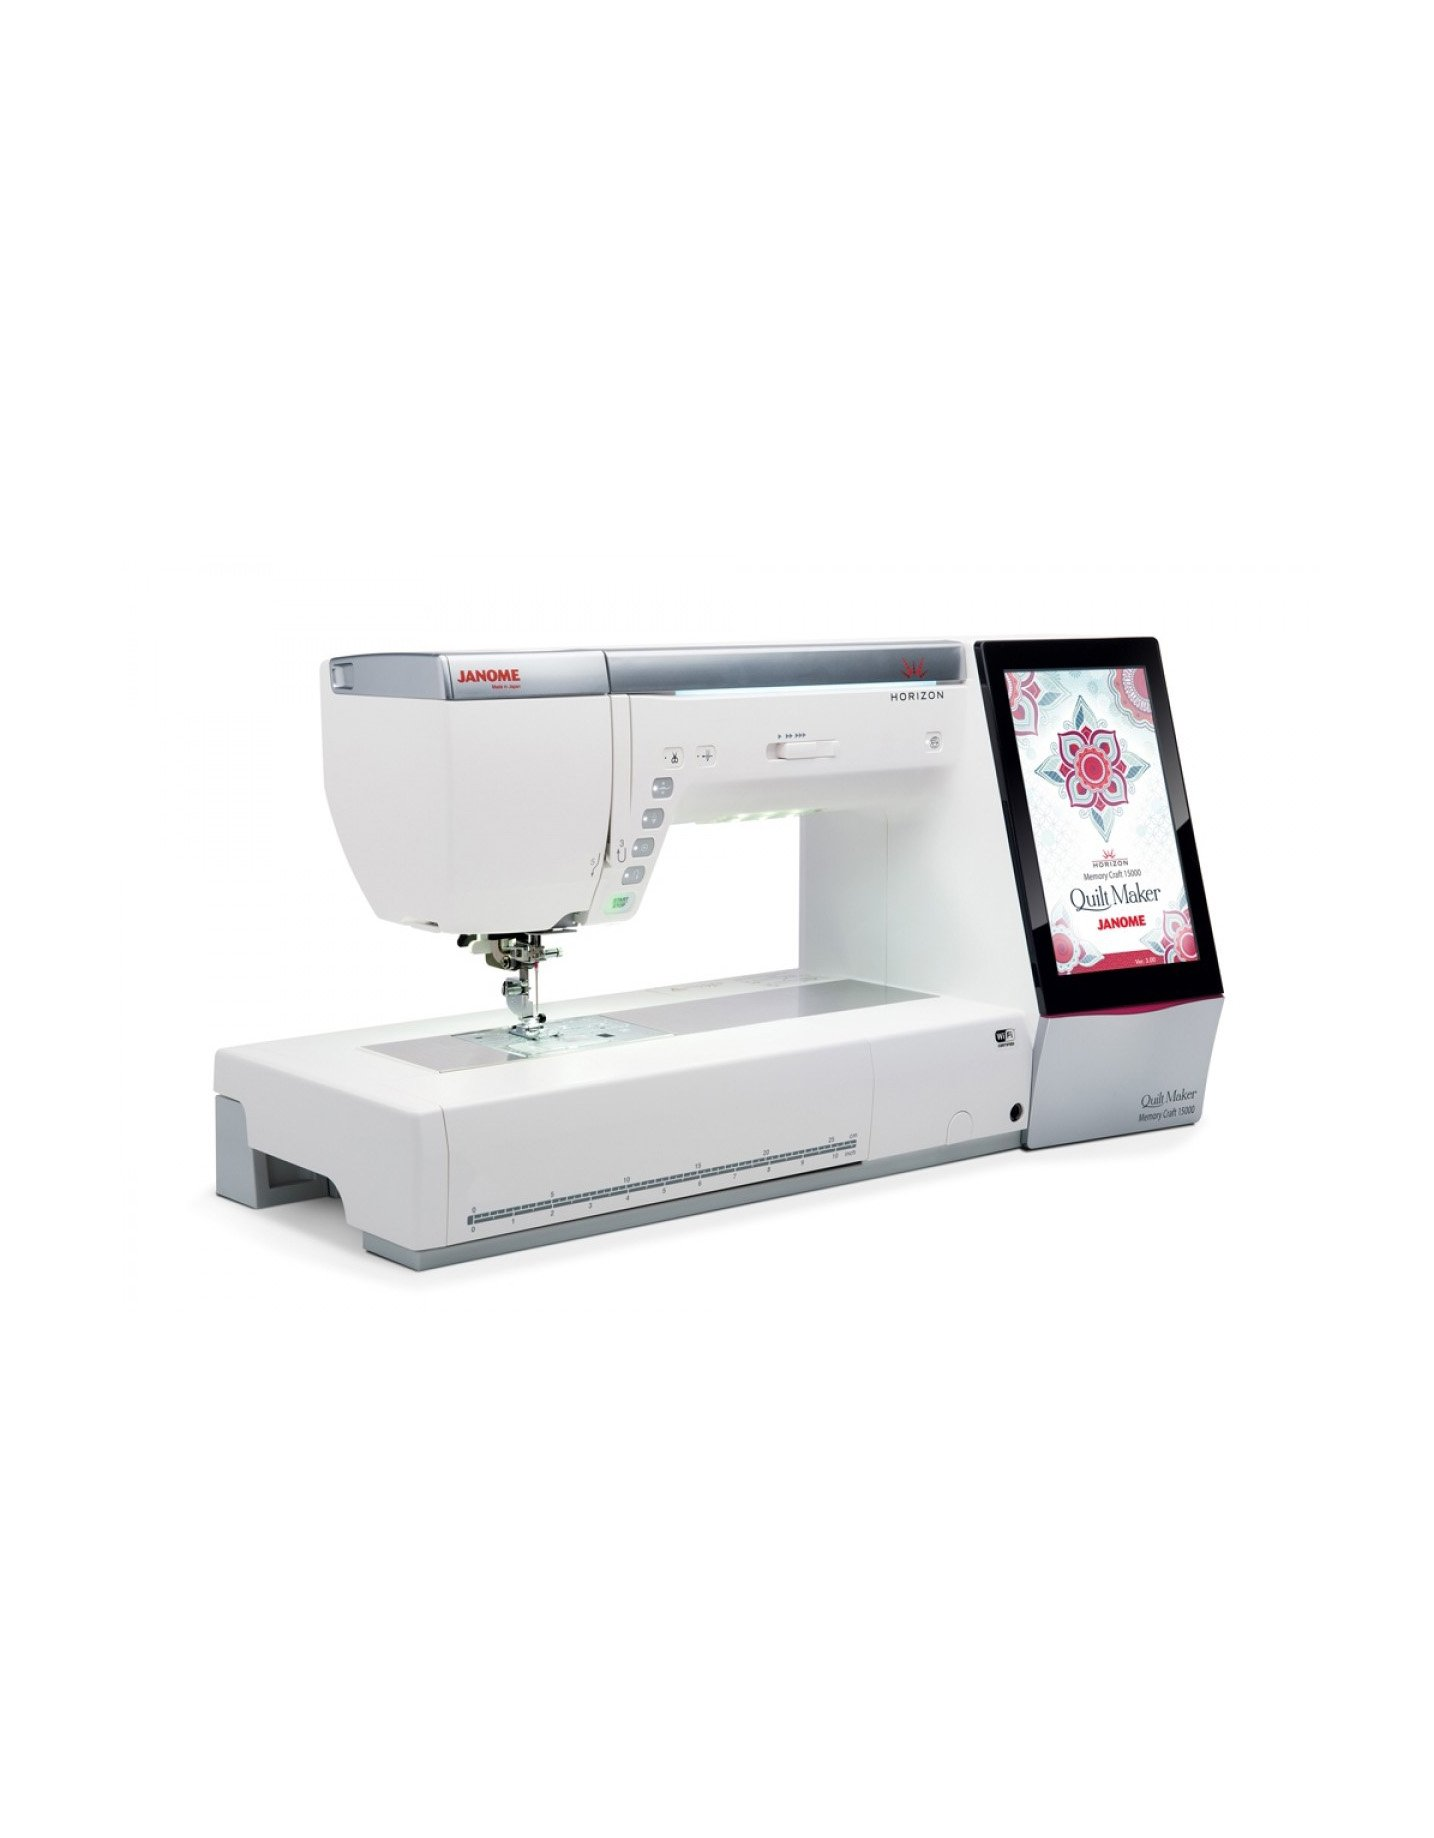 Quilt Maker Mc15000 Sewing Quilting Amp Embroidery